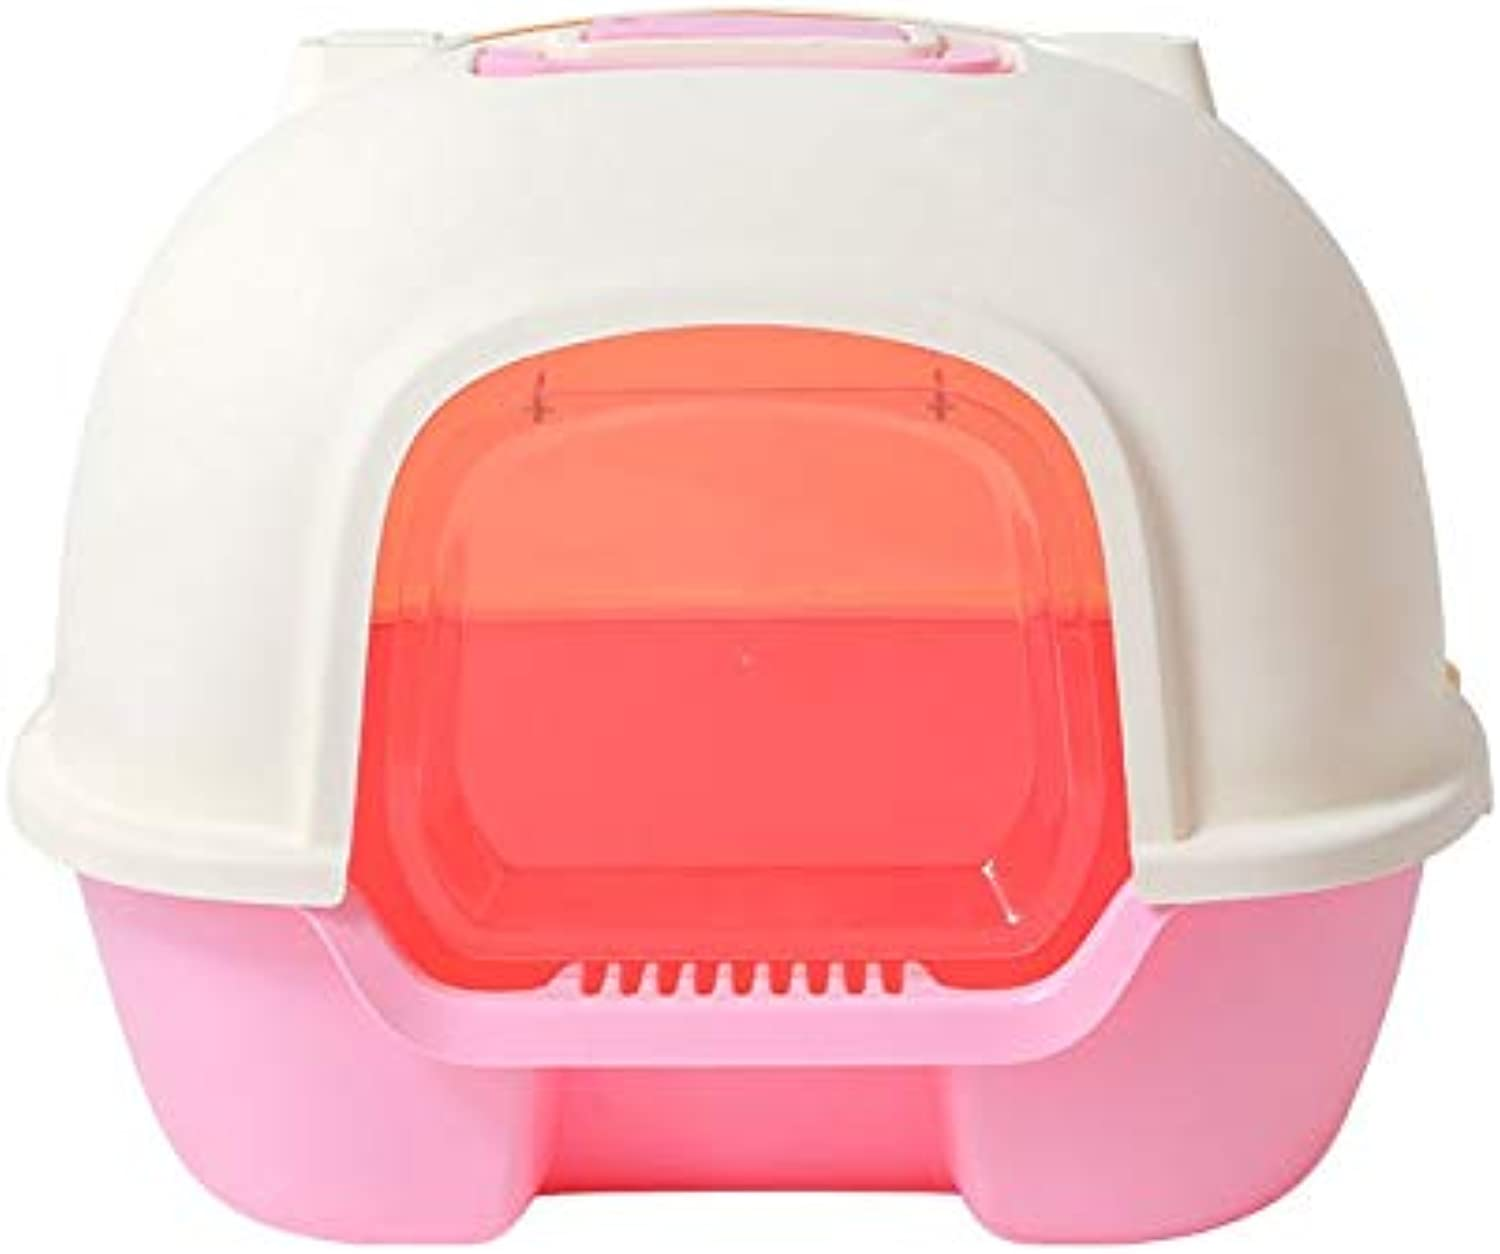 CWXG Cat Litter Box with Lid Extra Large by Litter Box AntiSplashing Cat Toilet SelfCleaning Cat Bedpan with Lid Stainresistant Odorresistant and Durable Pet Litterbo BoxPink